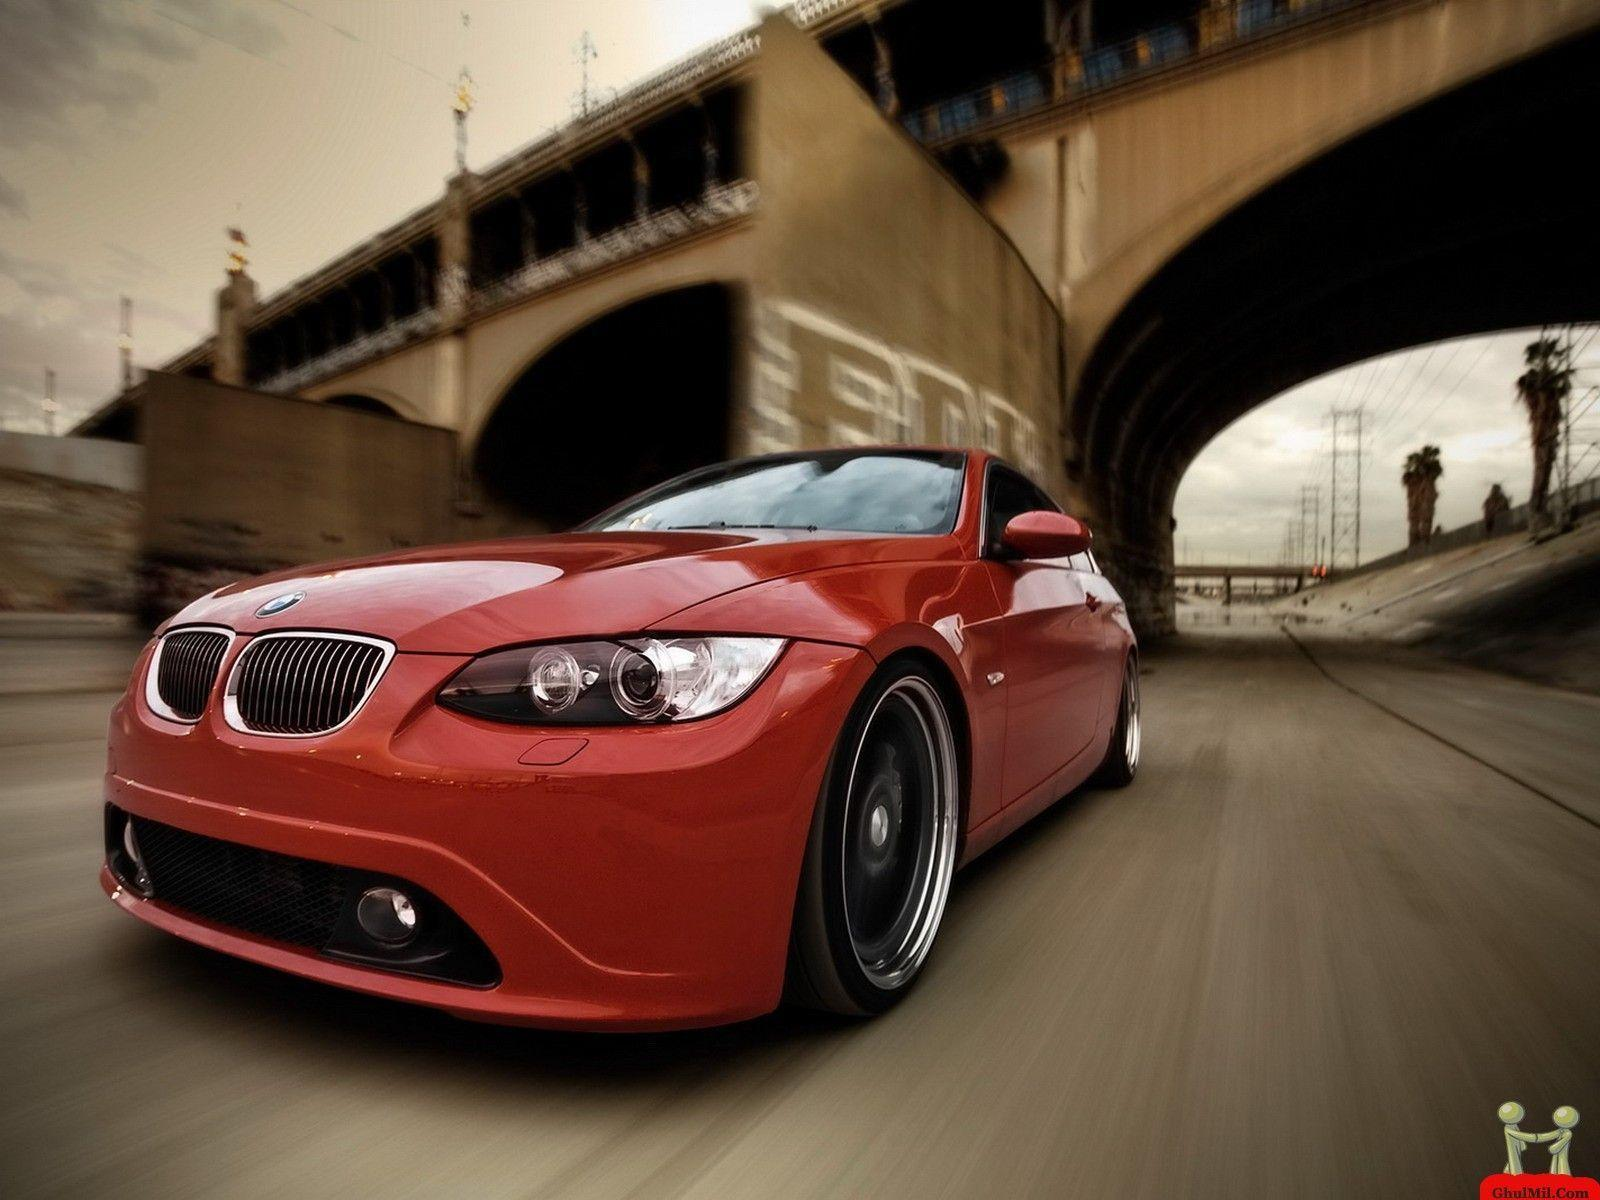 New bmw car wallpaper | Wallpapers wide cars